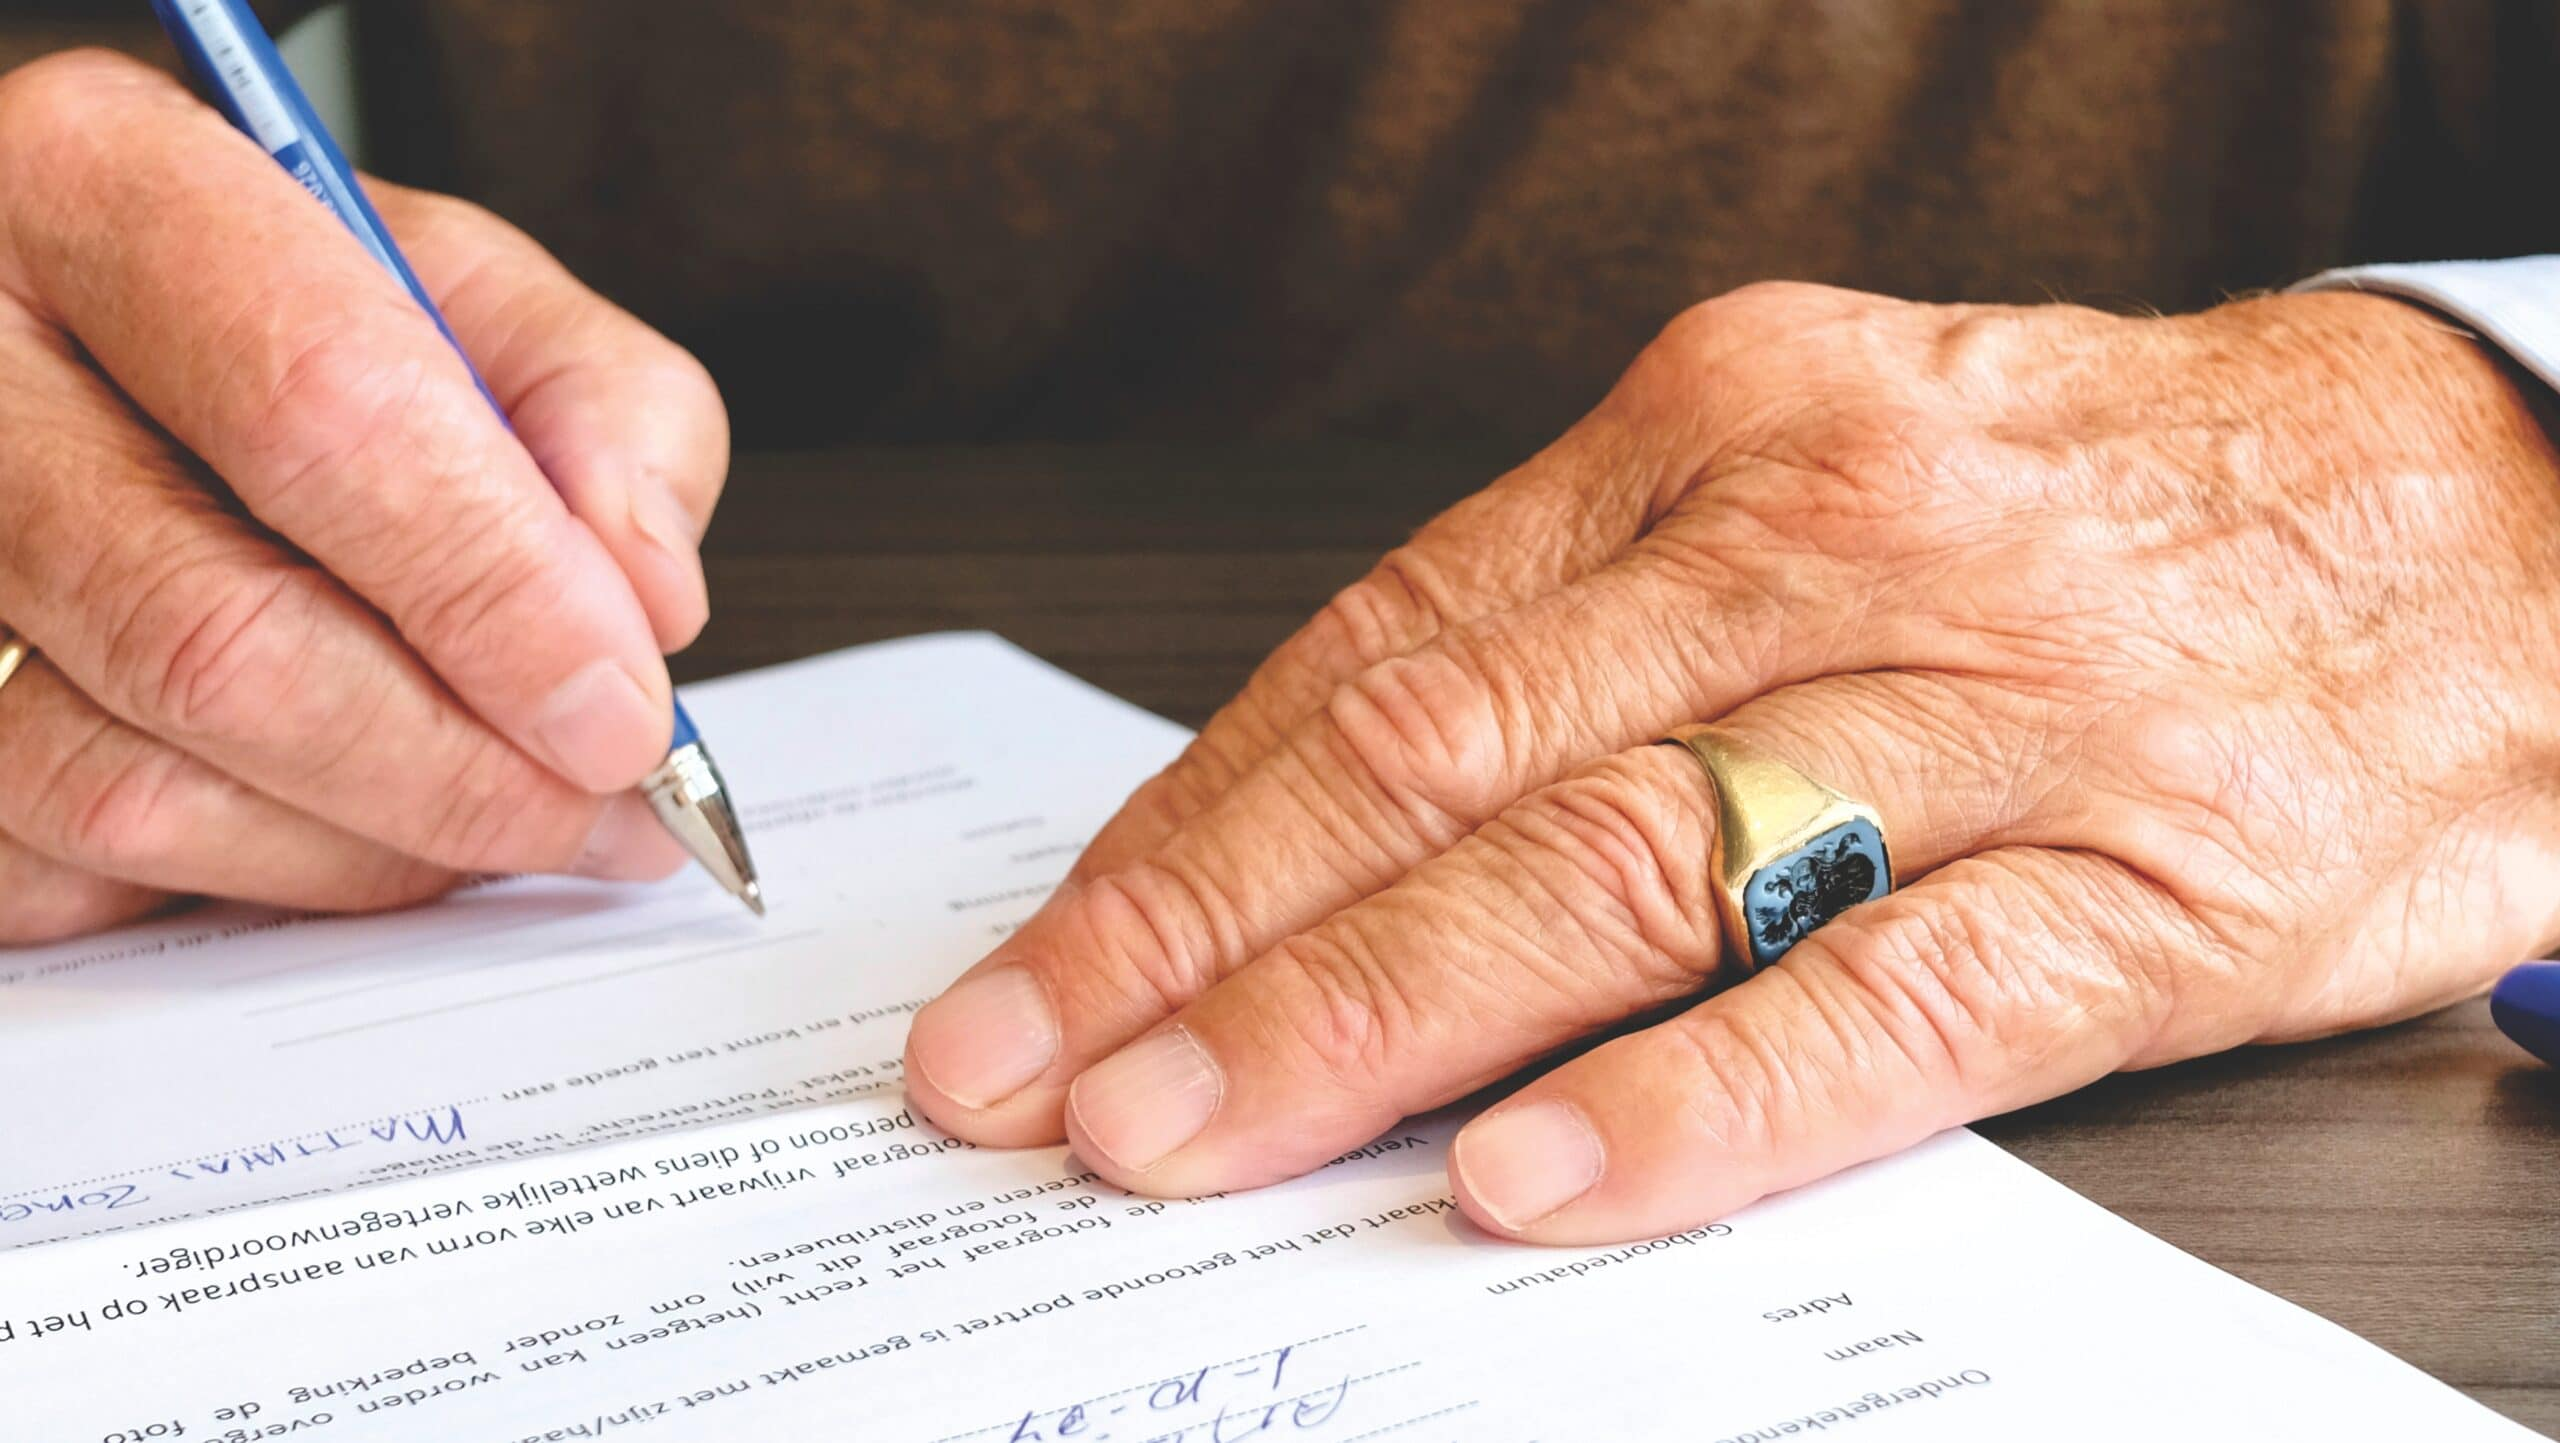 Photo of hands signing a document